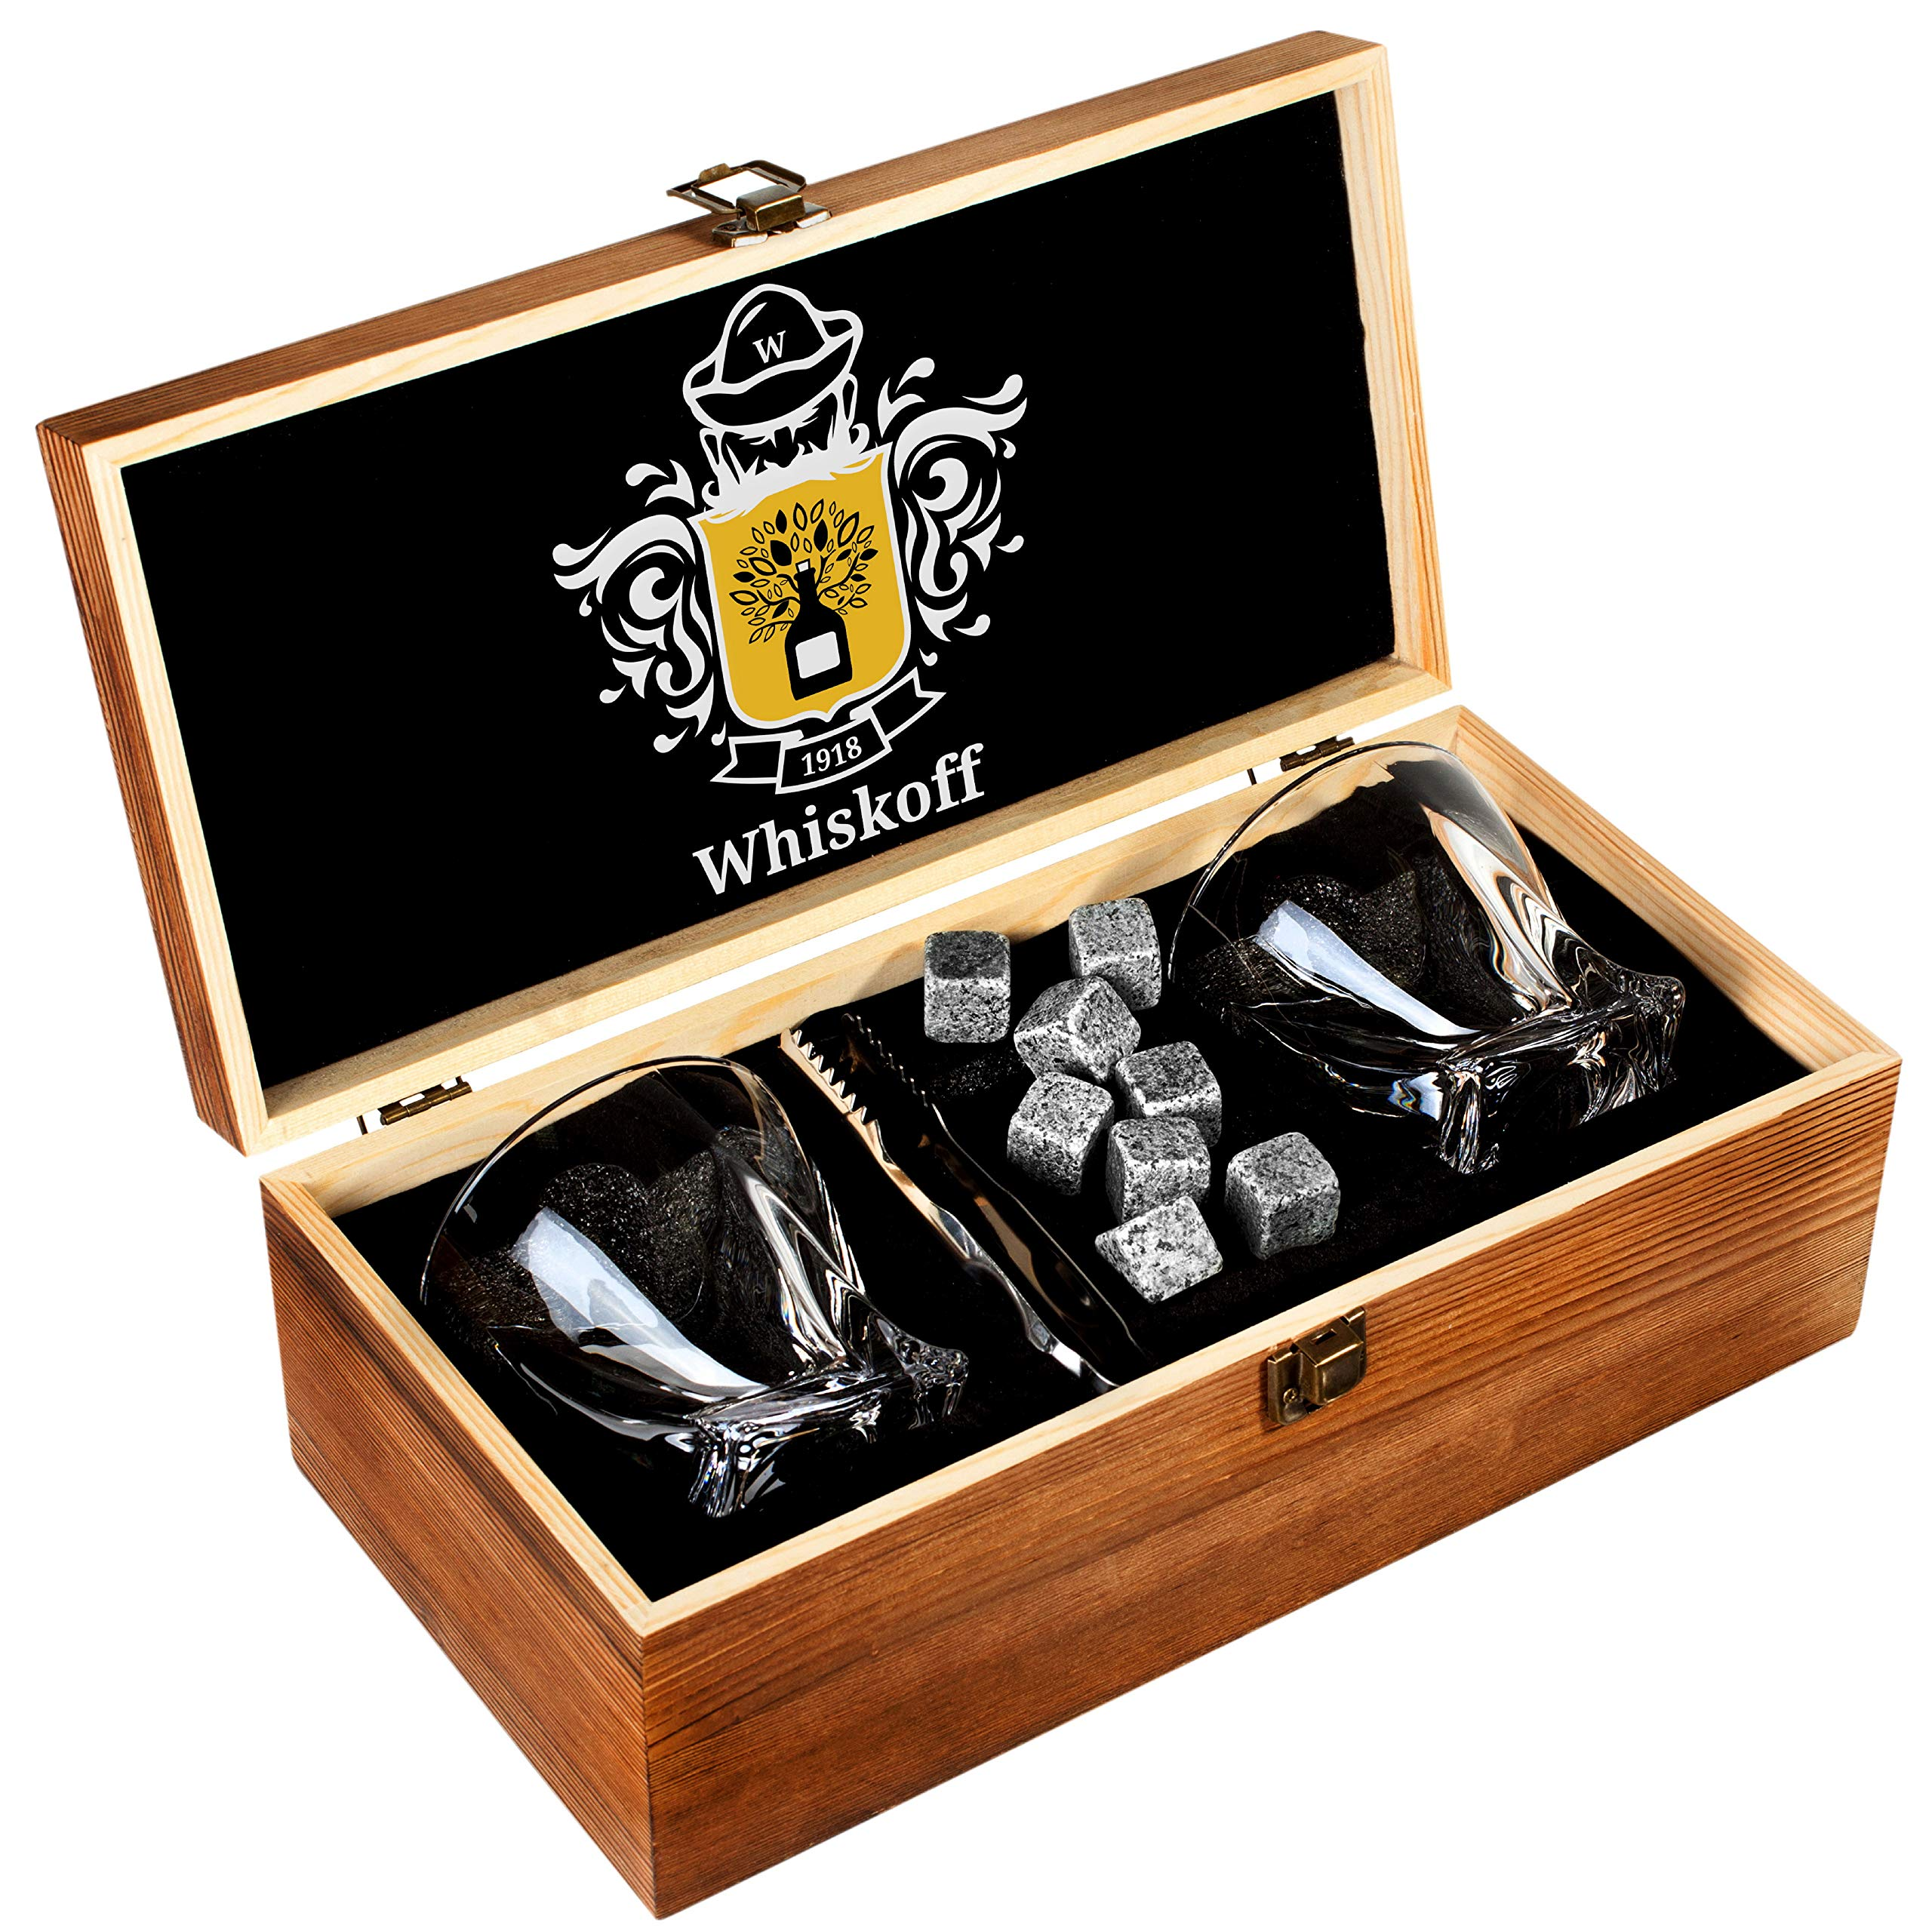 Whiskey Glass Set of 2 - Bourbon Whiskey Stones Gift Set - Twist Scotch Rocks Tongs, Coasters, Chilling Stones & Bar Glasses - Drinking Glasses for Men & Woman - Whiskey Glassware in Wooden Gift Box